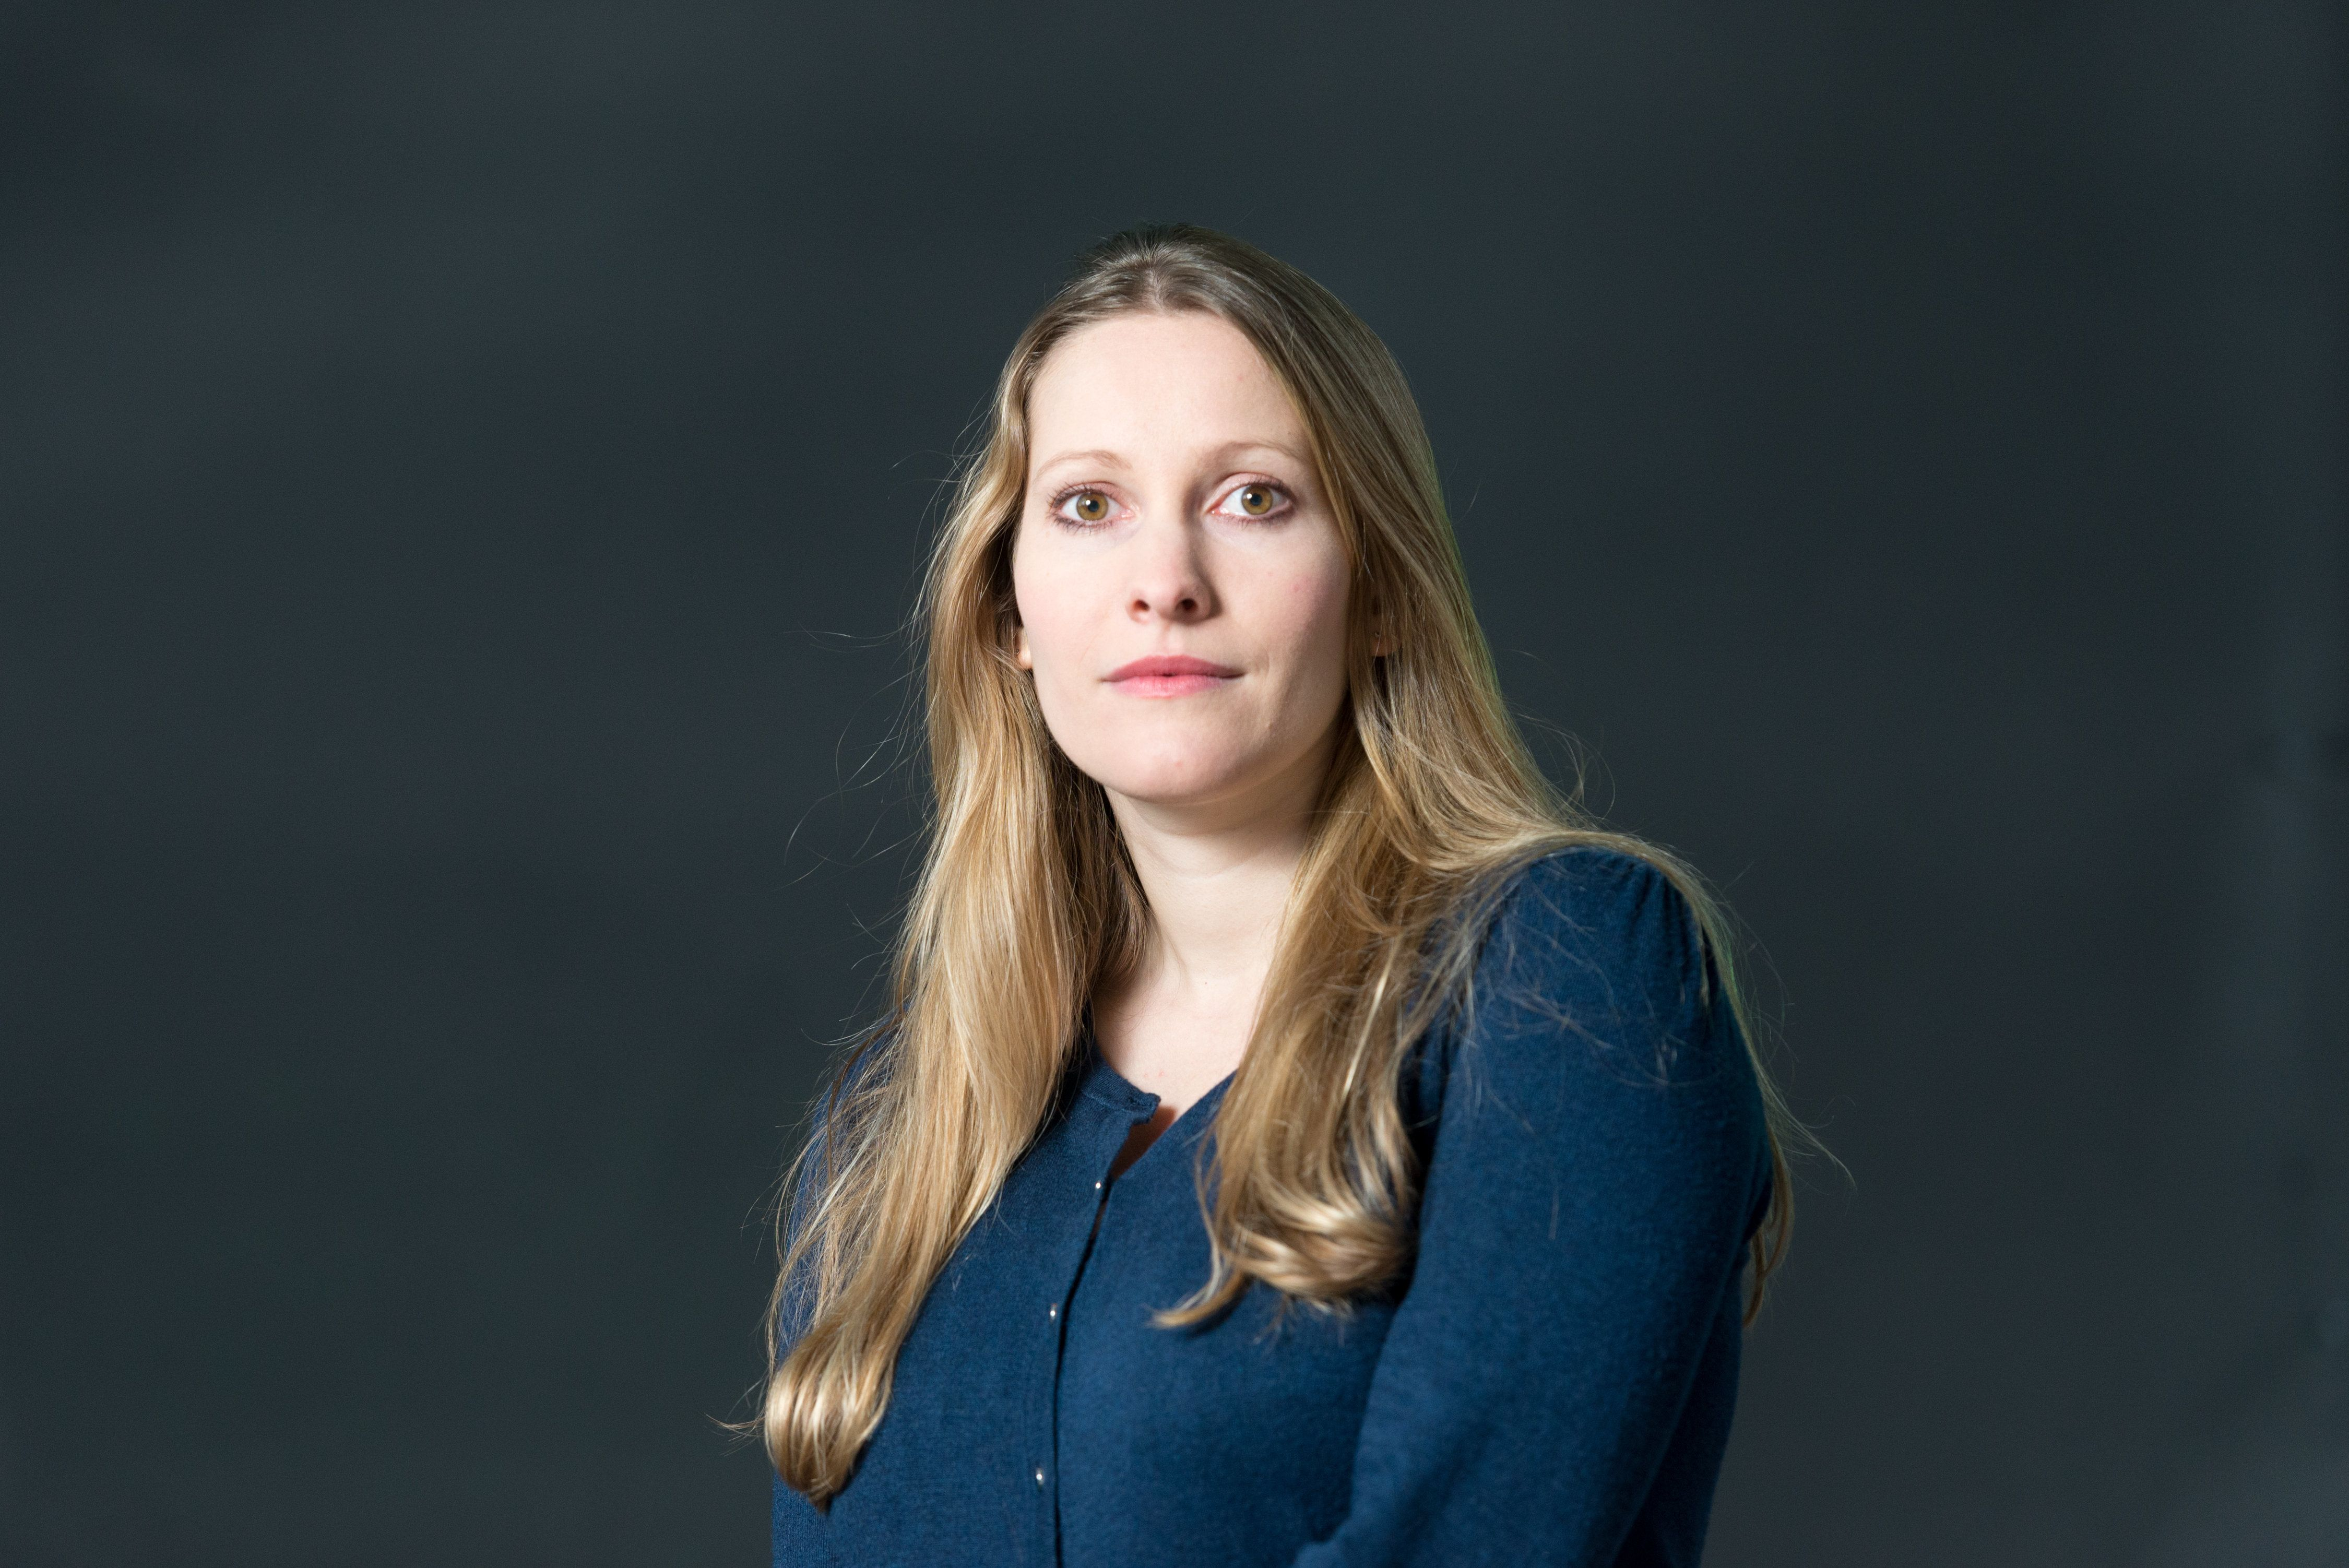 Laura Bates, founder of Everyday